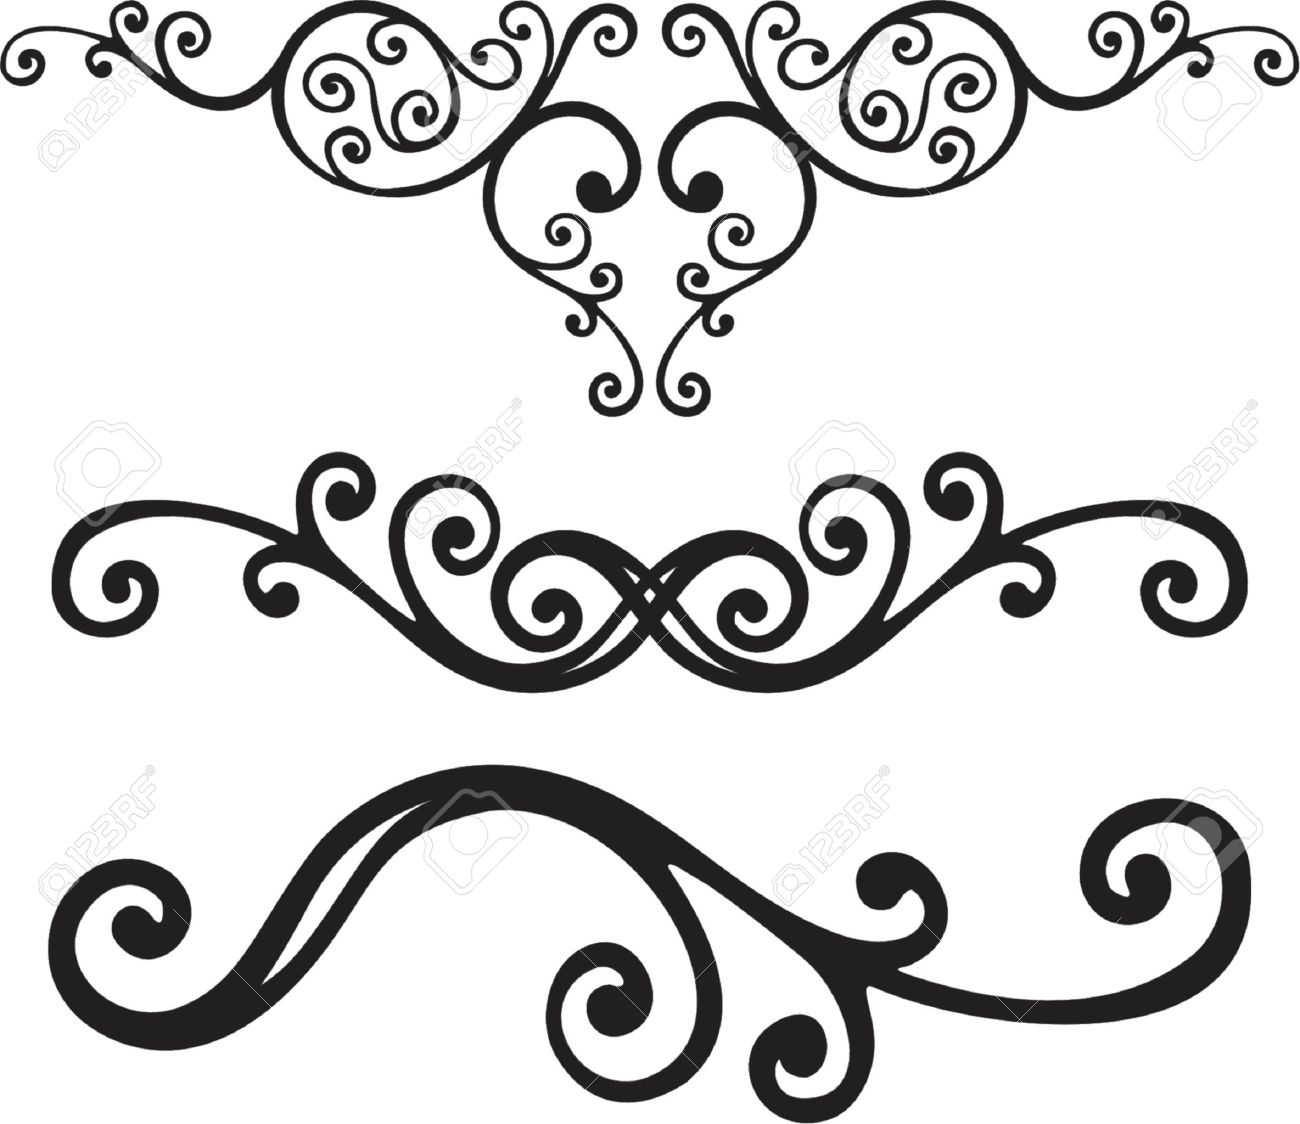 vector ornament In flower style Stock Vector - 1029129